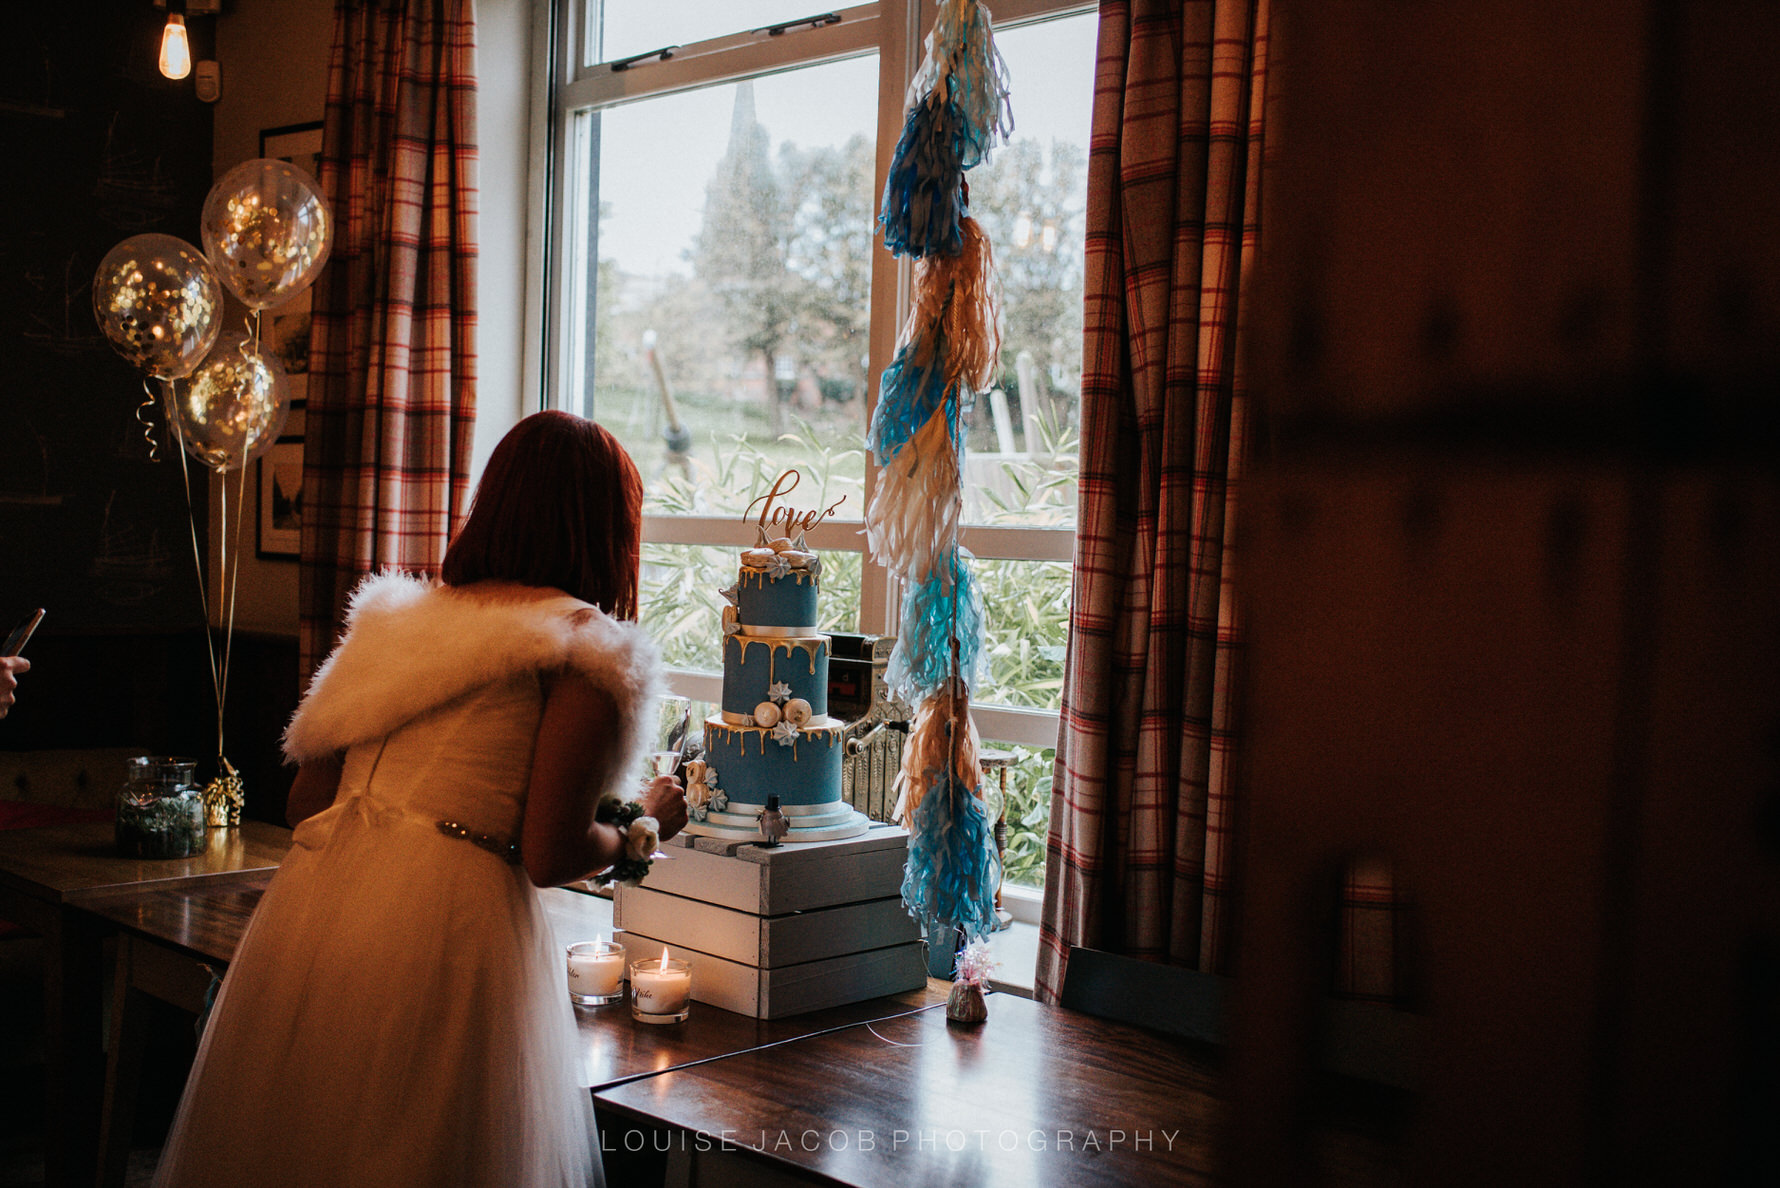 Documentary Wedding Photography bride looking at her wedding cake